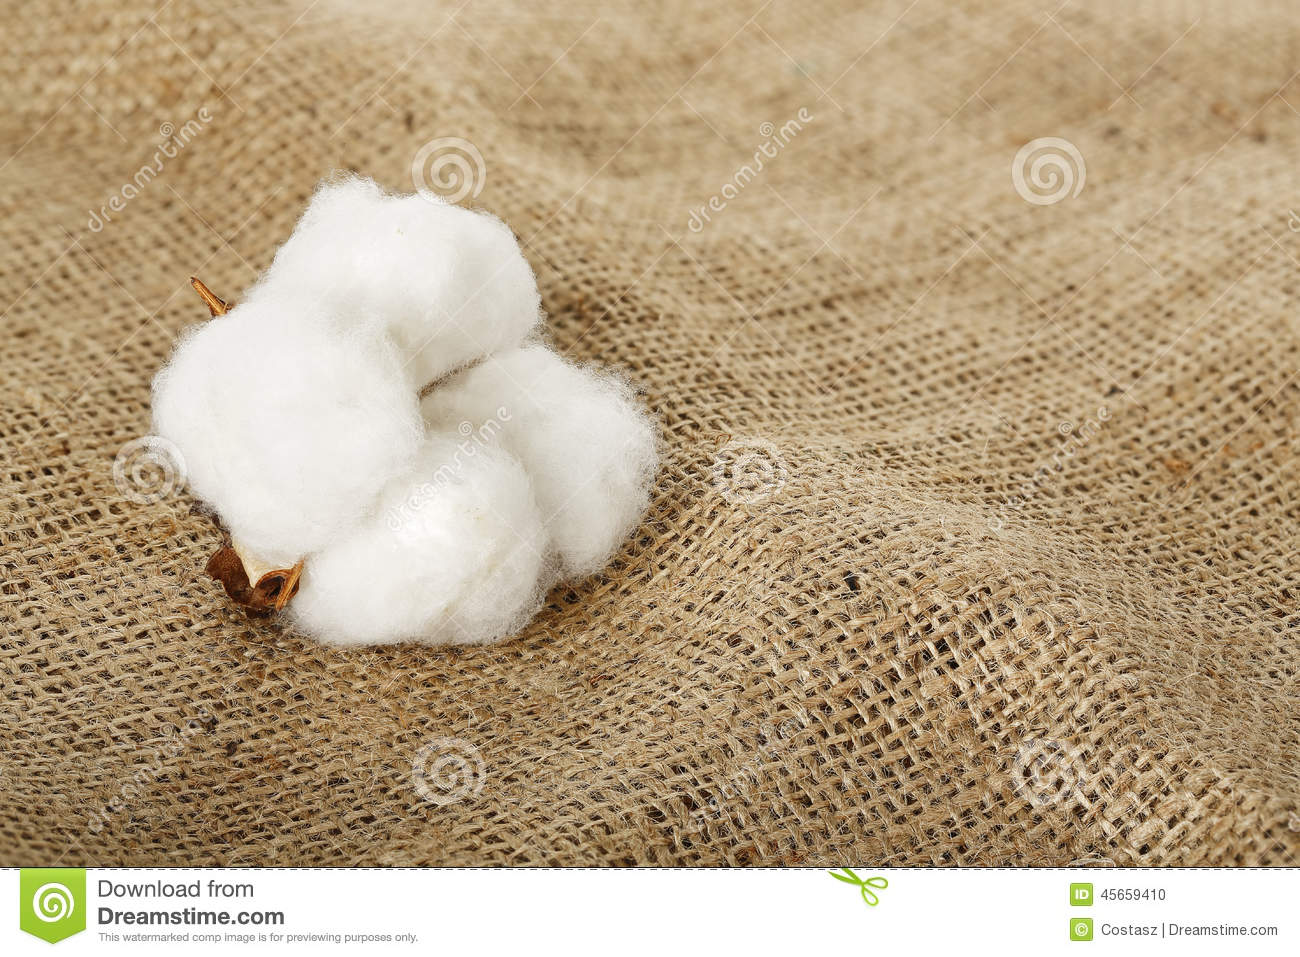 cotton plant divorced singles How a cotton plant grows  a single leaf forms at each node in a spiral arrangement in upland cotton grown in texas, .